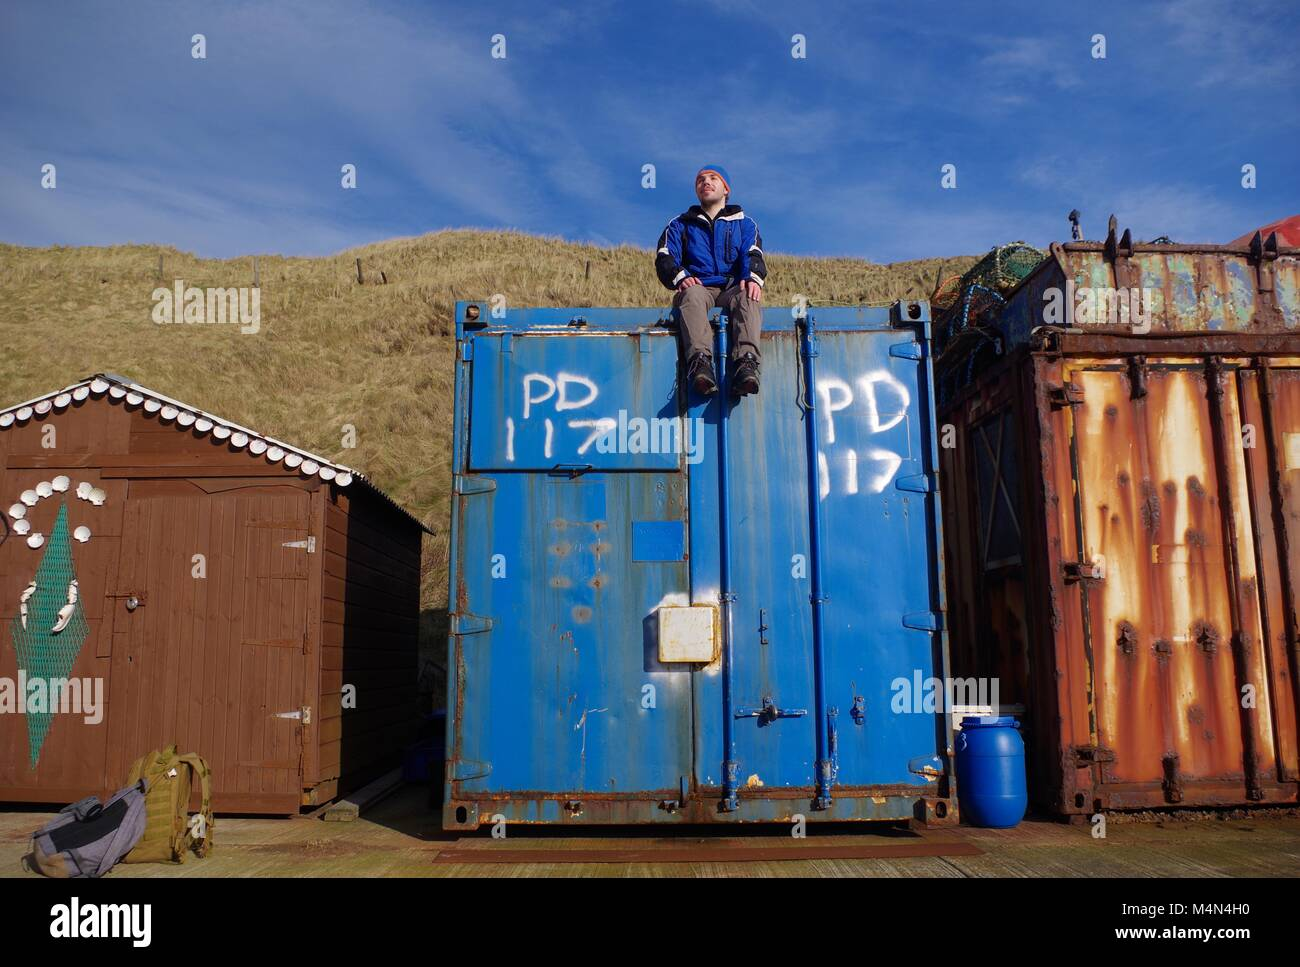 Young British Man On Top of a Used Storage Shipping Container. Port Erroll, Cruden Bay, Aberdeenshire, Scotland, UK. North Sea Fishing Industry. Stock Photo